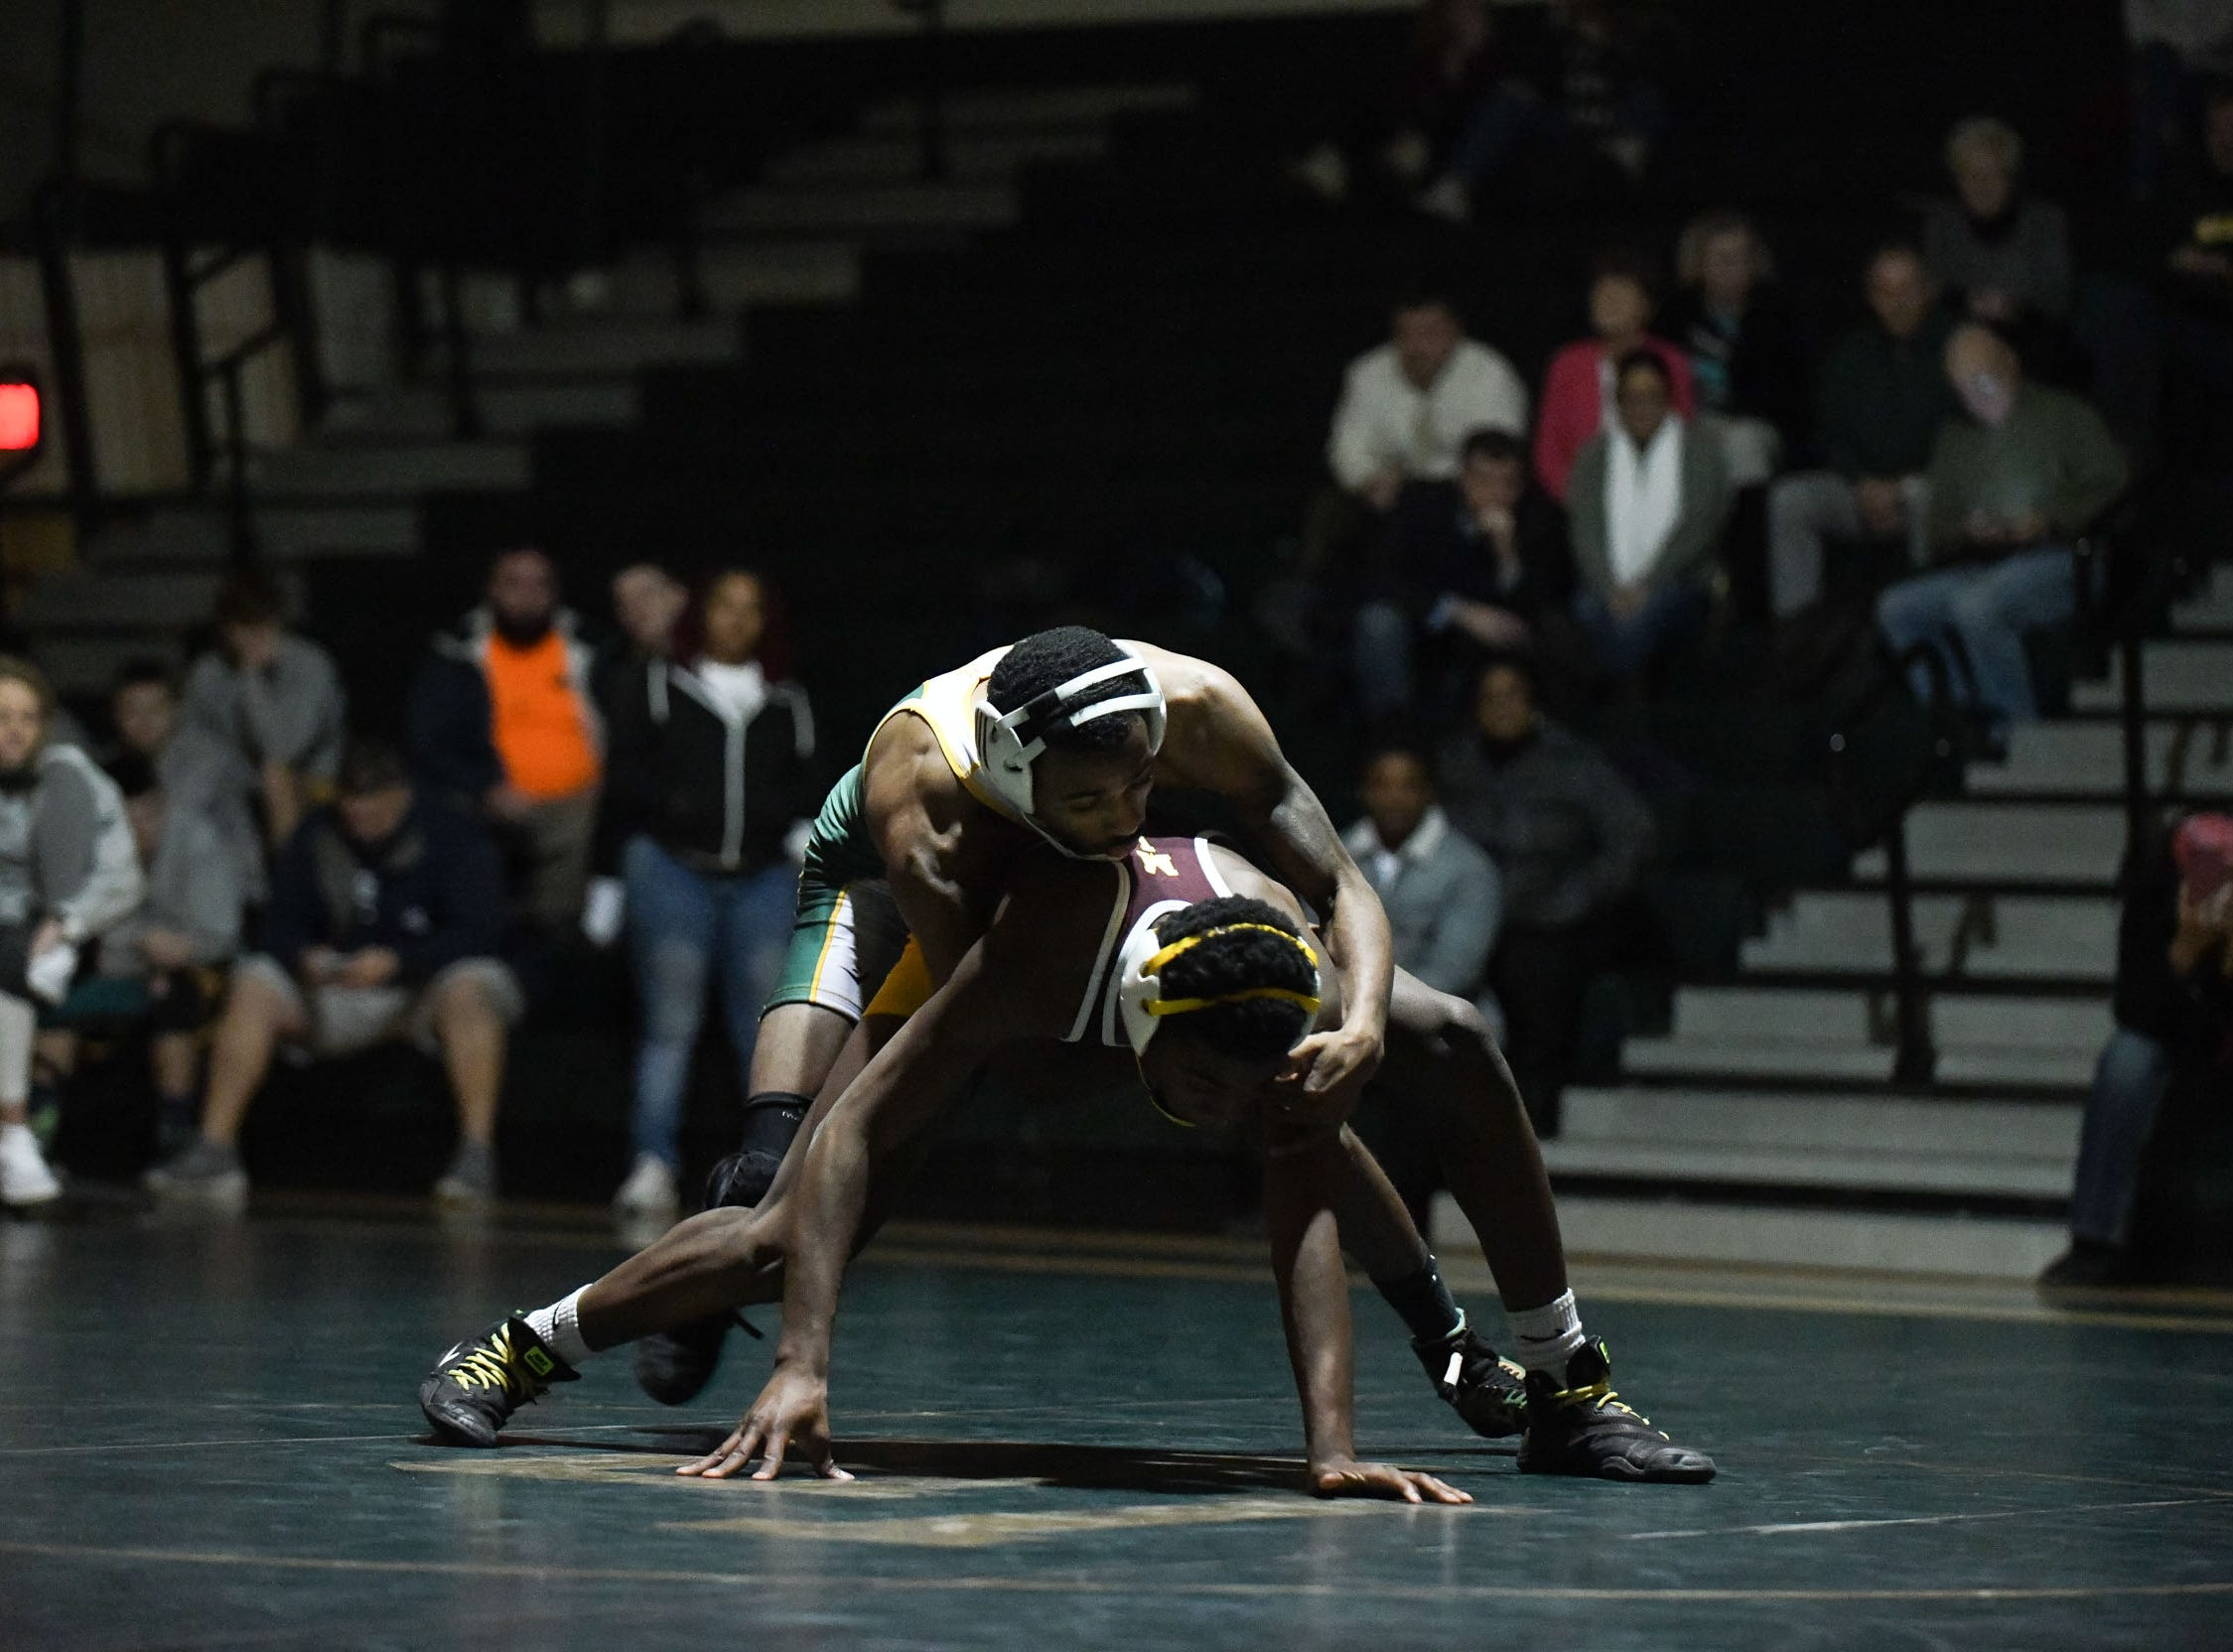 Indian River's Ta'Jon Knight battled Milford's Timothy O'Hara during the 126lb match on Thursday, Jan 17, 2019 in Dagsboro, Del. Milford won the match 53-15.